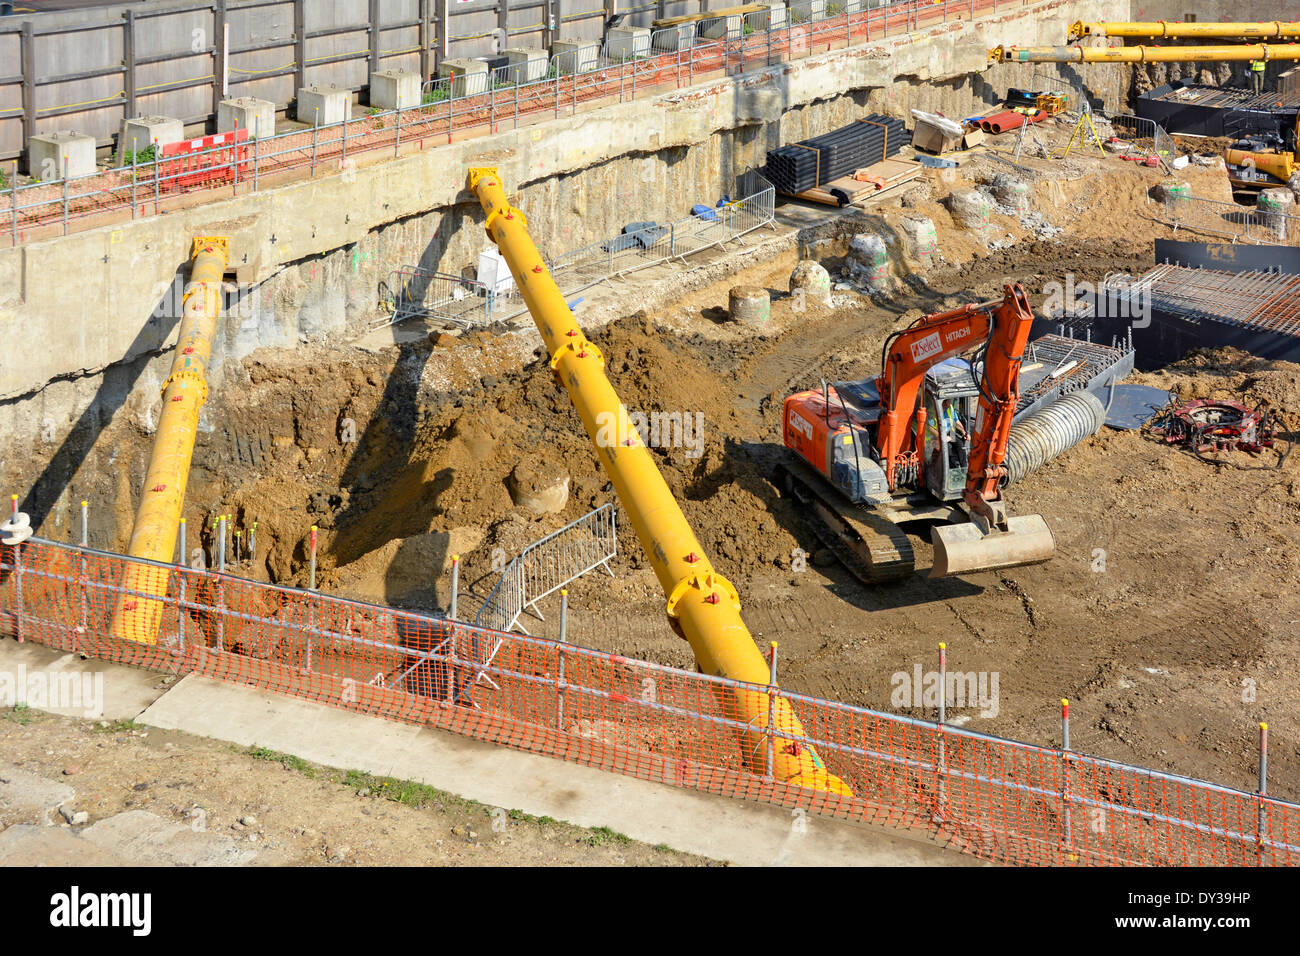 Diagonal shoring struts in pace across corners of retaining walls on large construction site - Stock Image